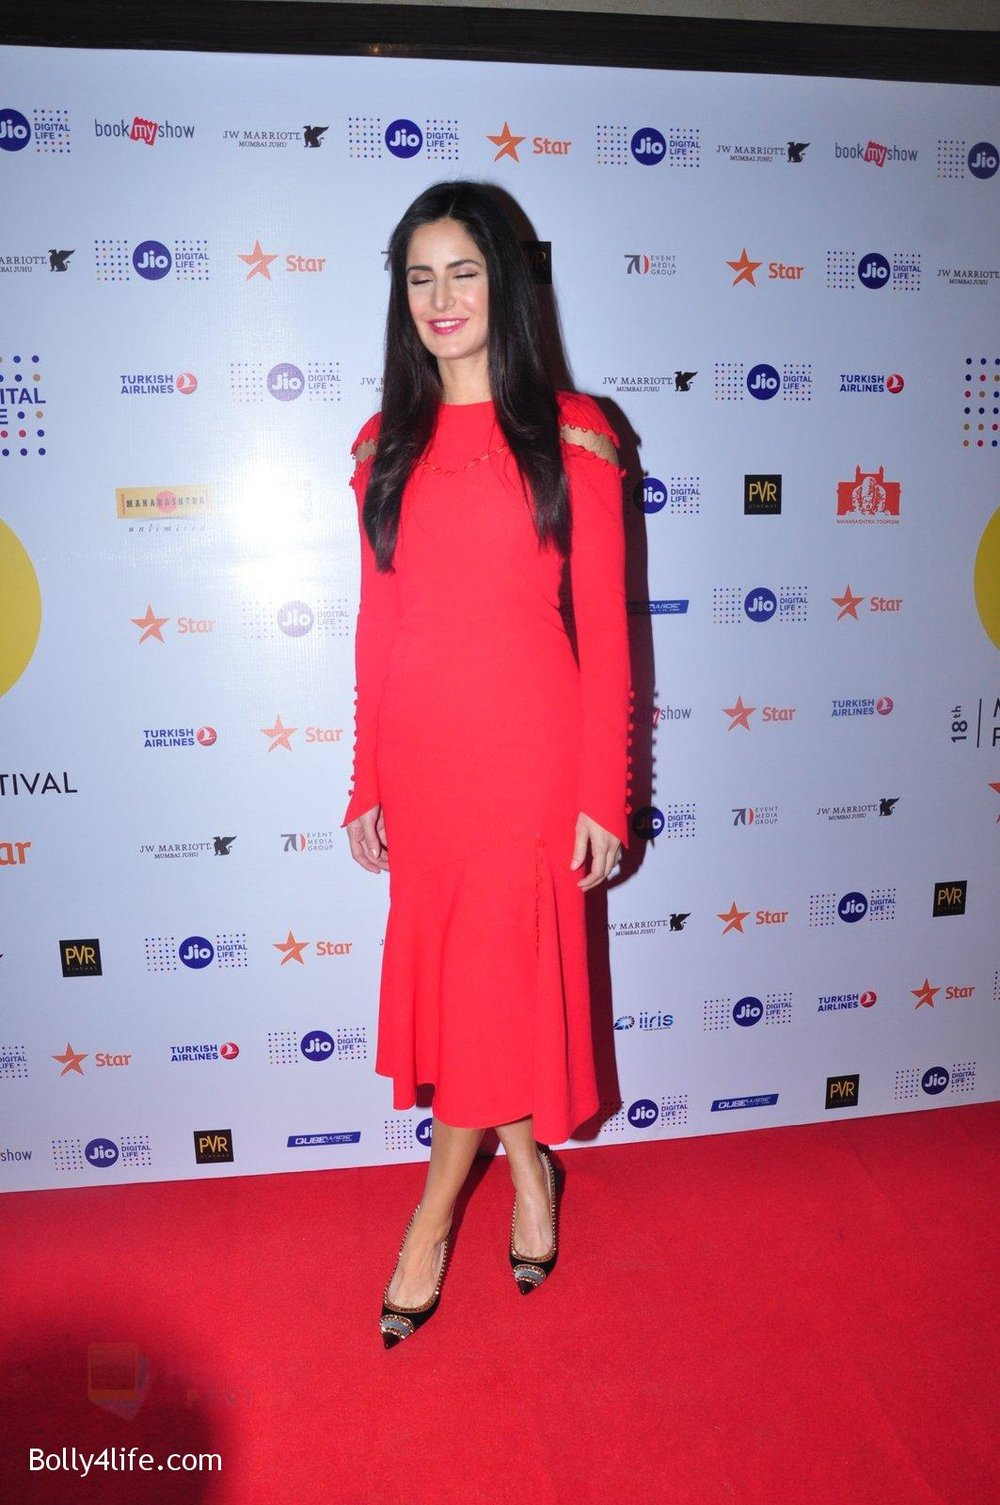 Katrina-Kaif-grace-a-discussion-at-the-MAMI-18th-Mumbai-Film-Festival-2016-on-27th-Oct-2016-31.jpg